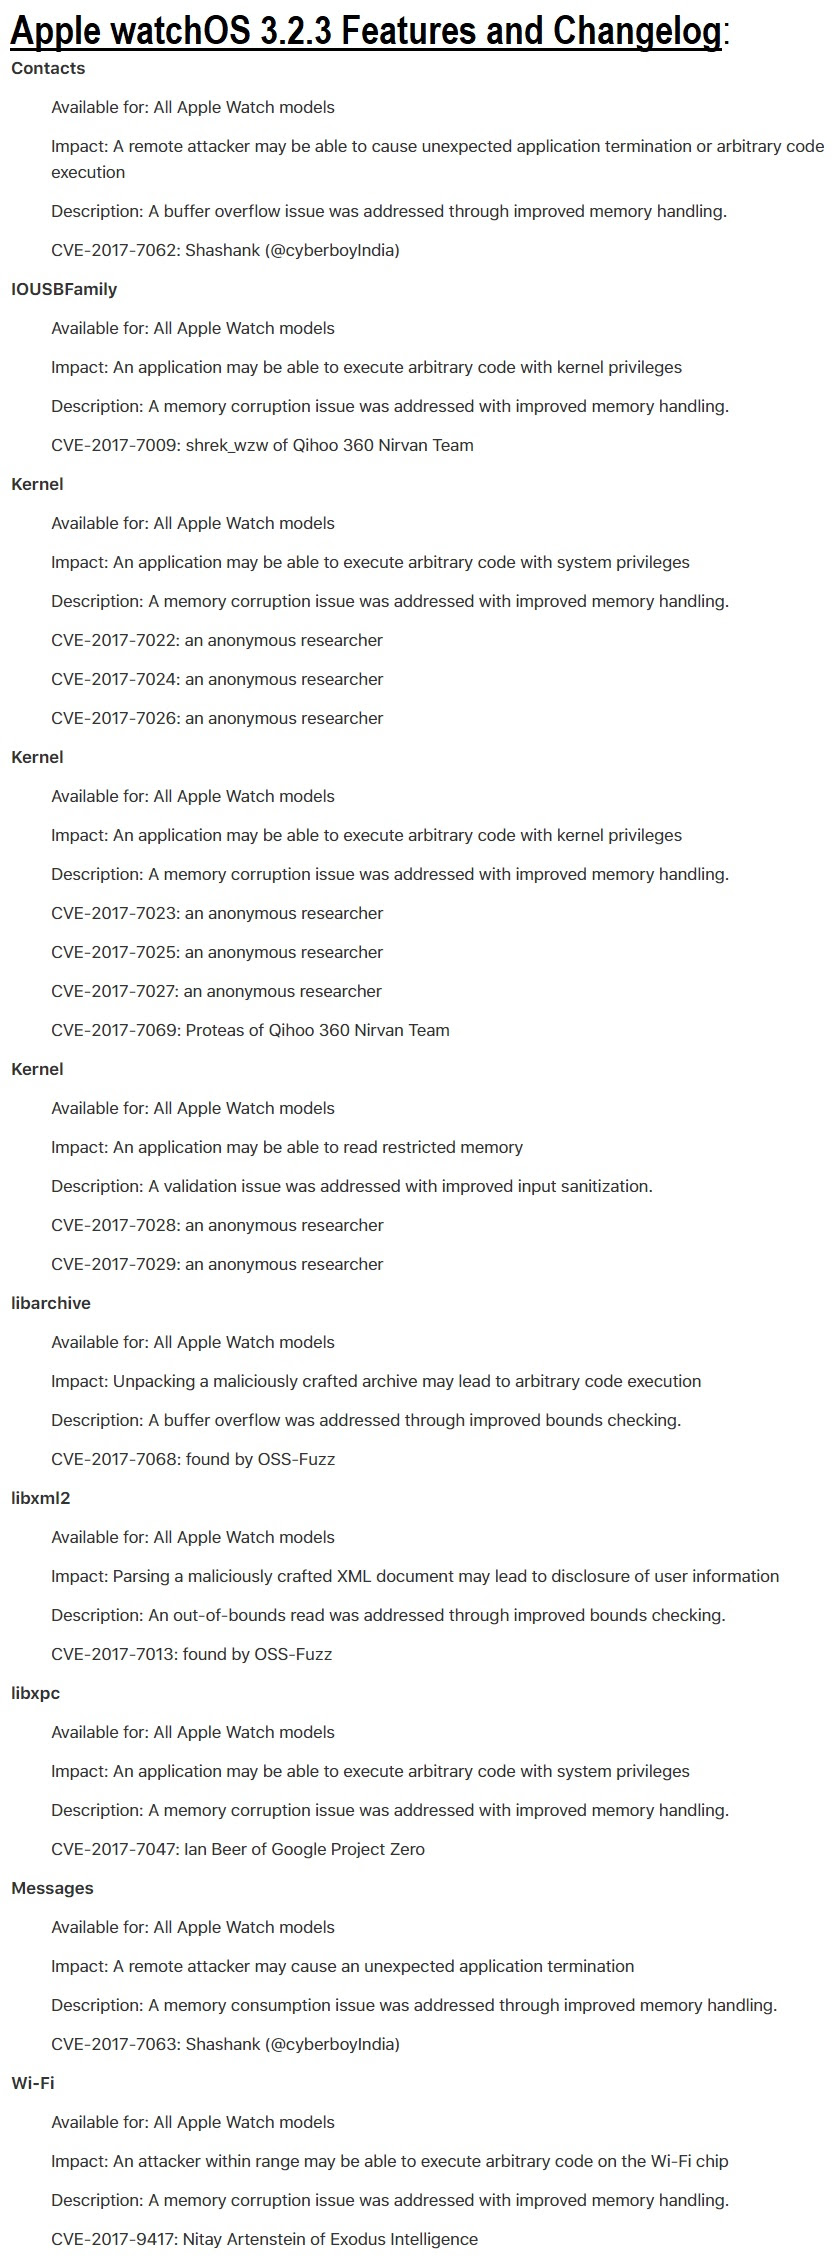 Apple watchOS 3.2.3 Features and Changelog